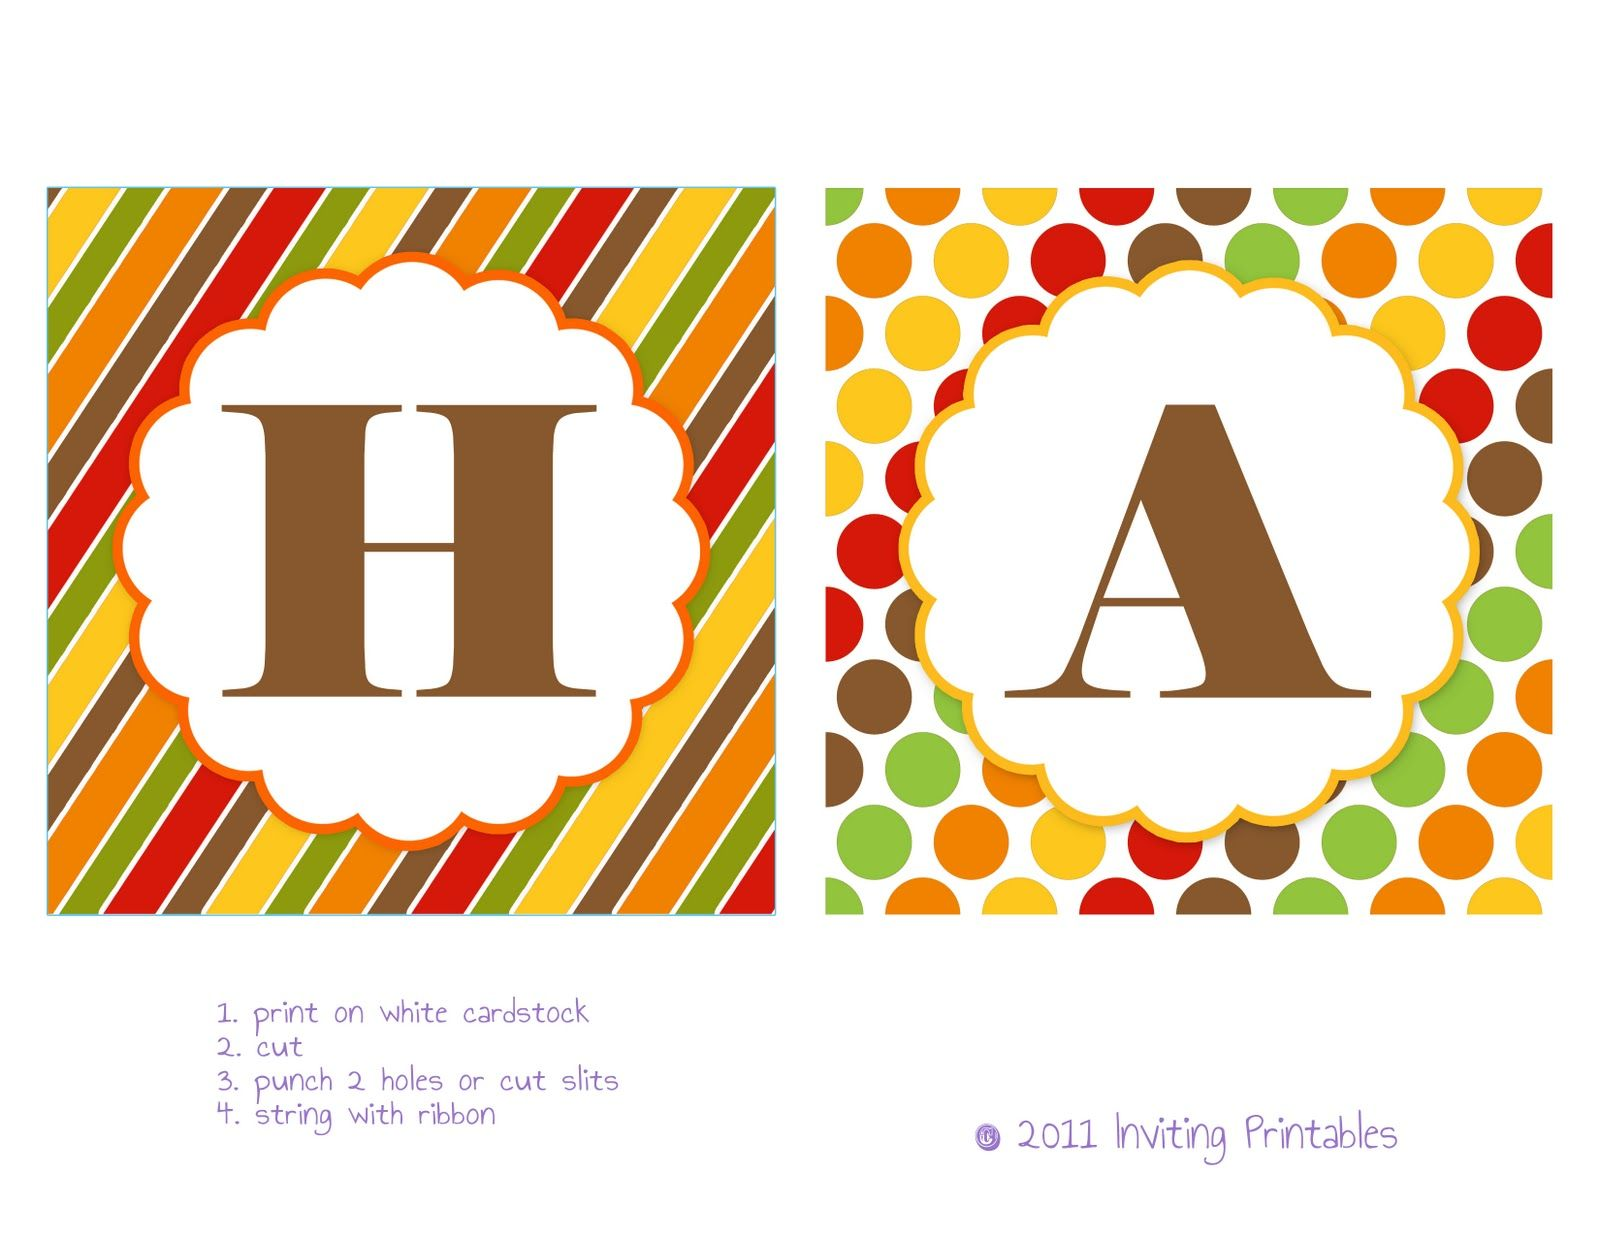 Inviting Printables Fall Freebie Happy Fall Printable Banner